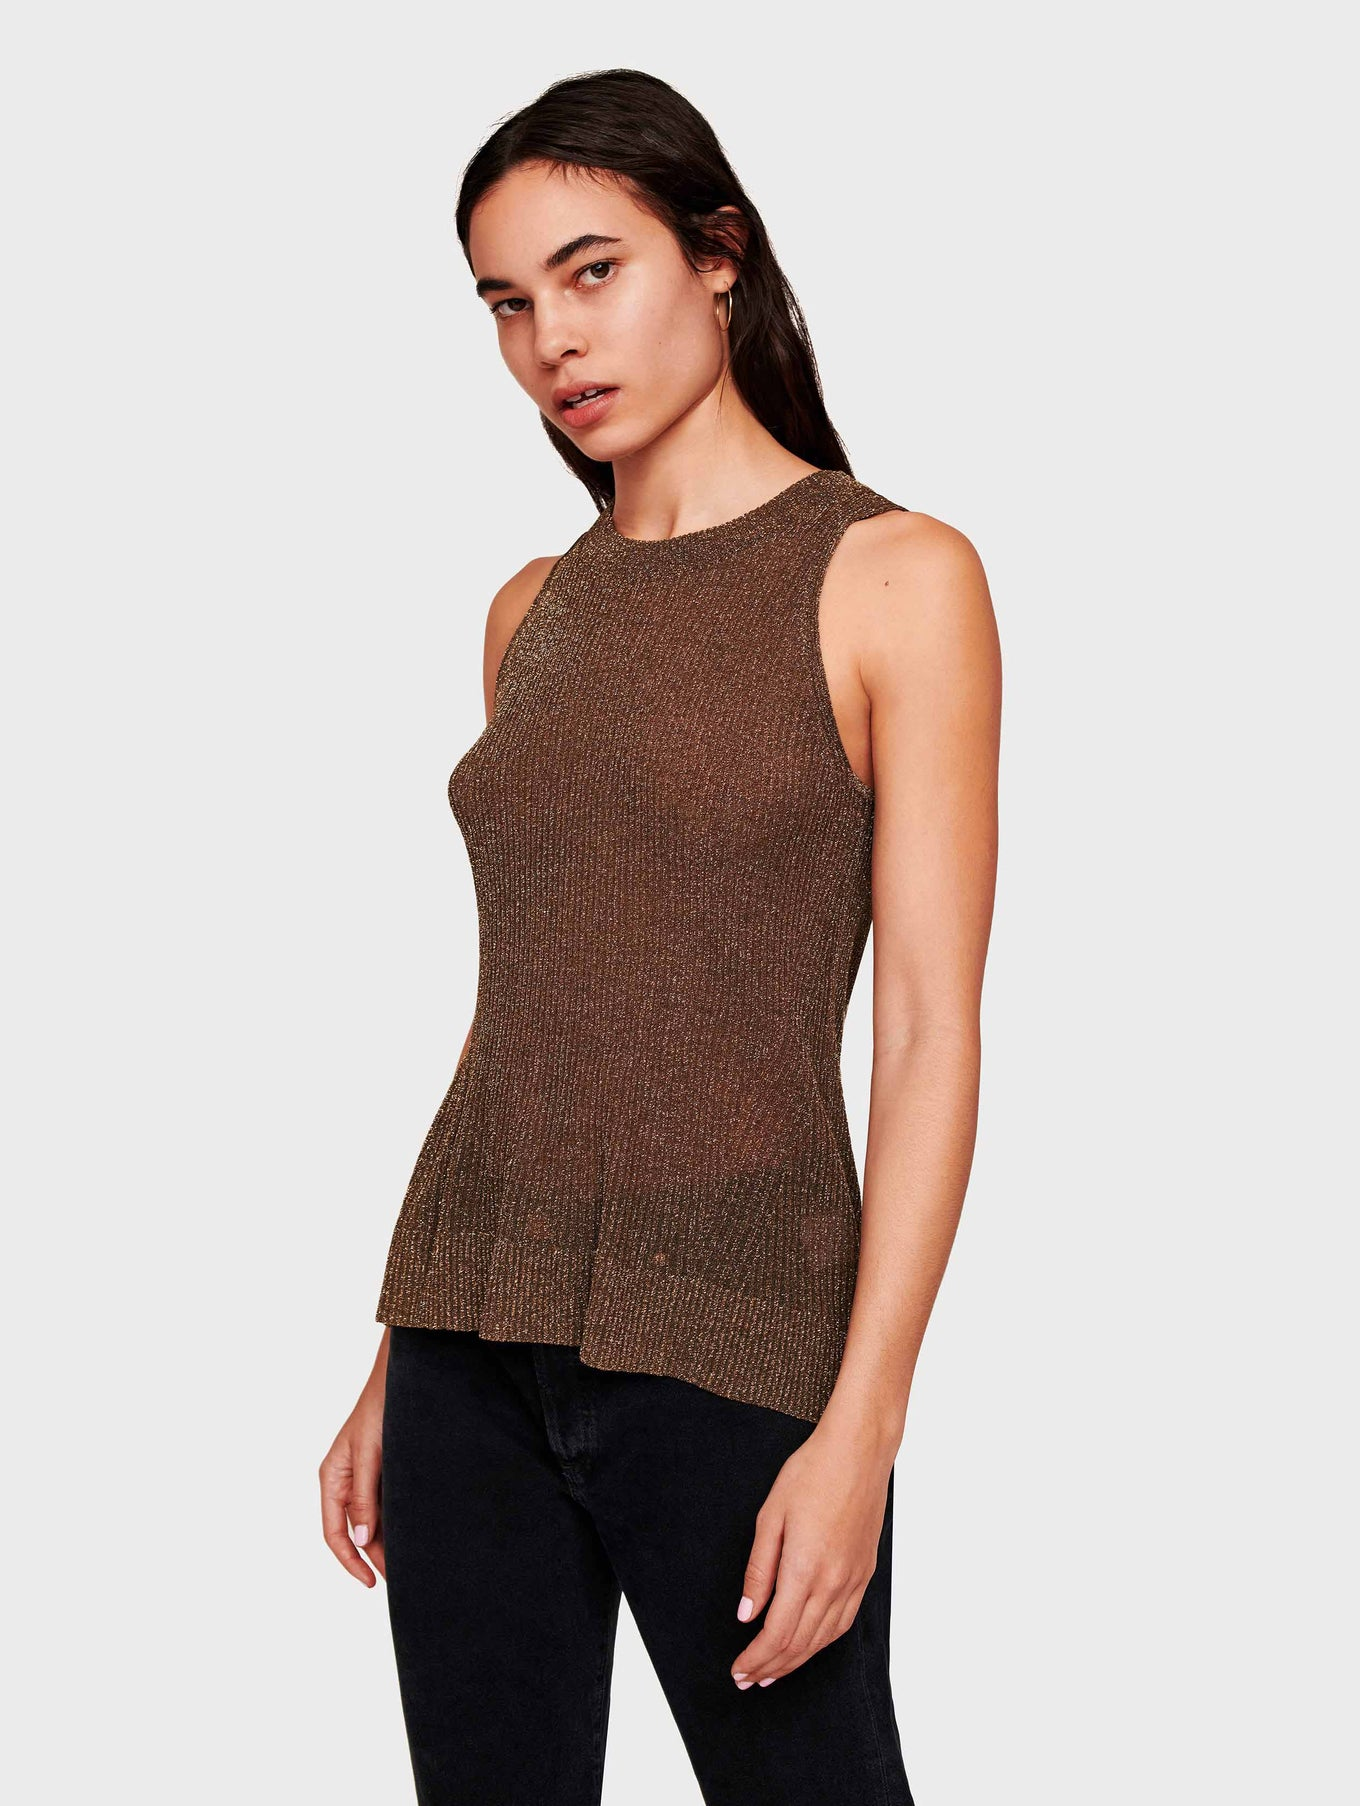 Italian Summer Shine Ribbed Tank - Metallic Bronze - Image 1